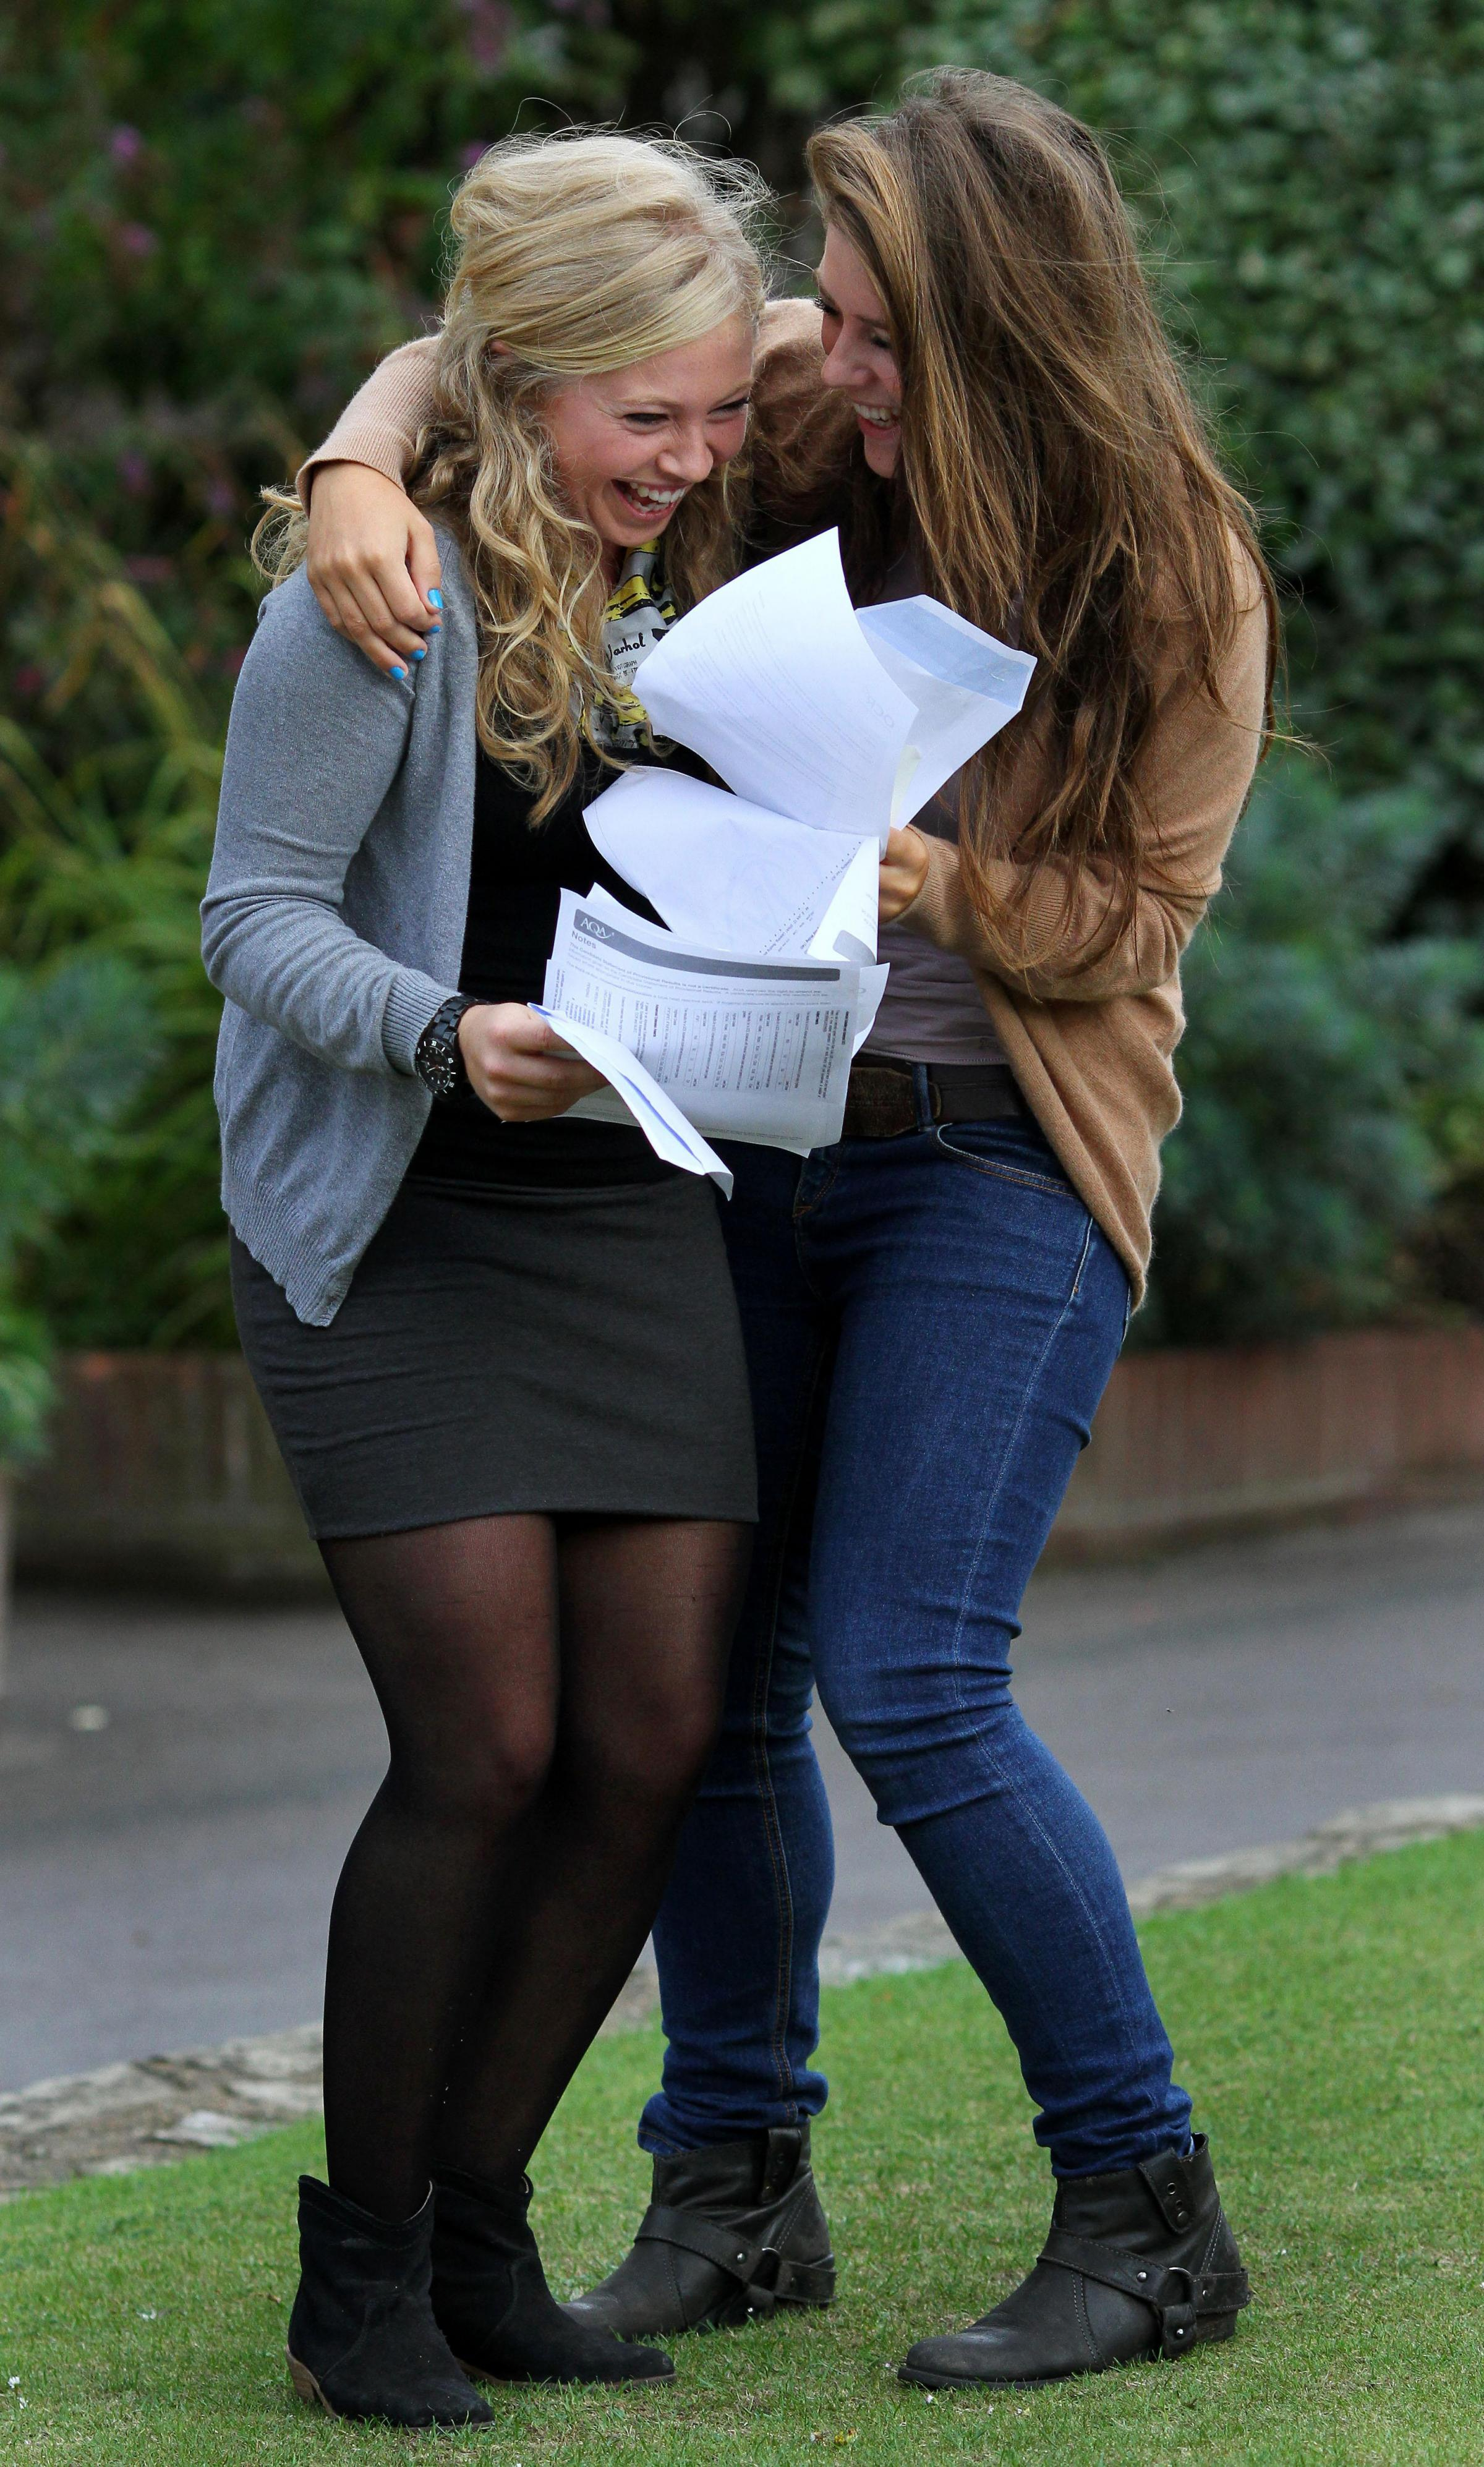 Students picking up A-level results today